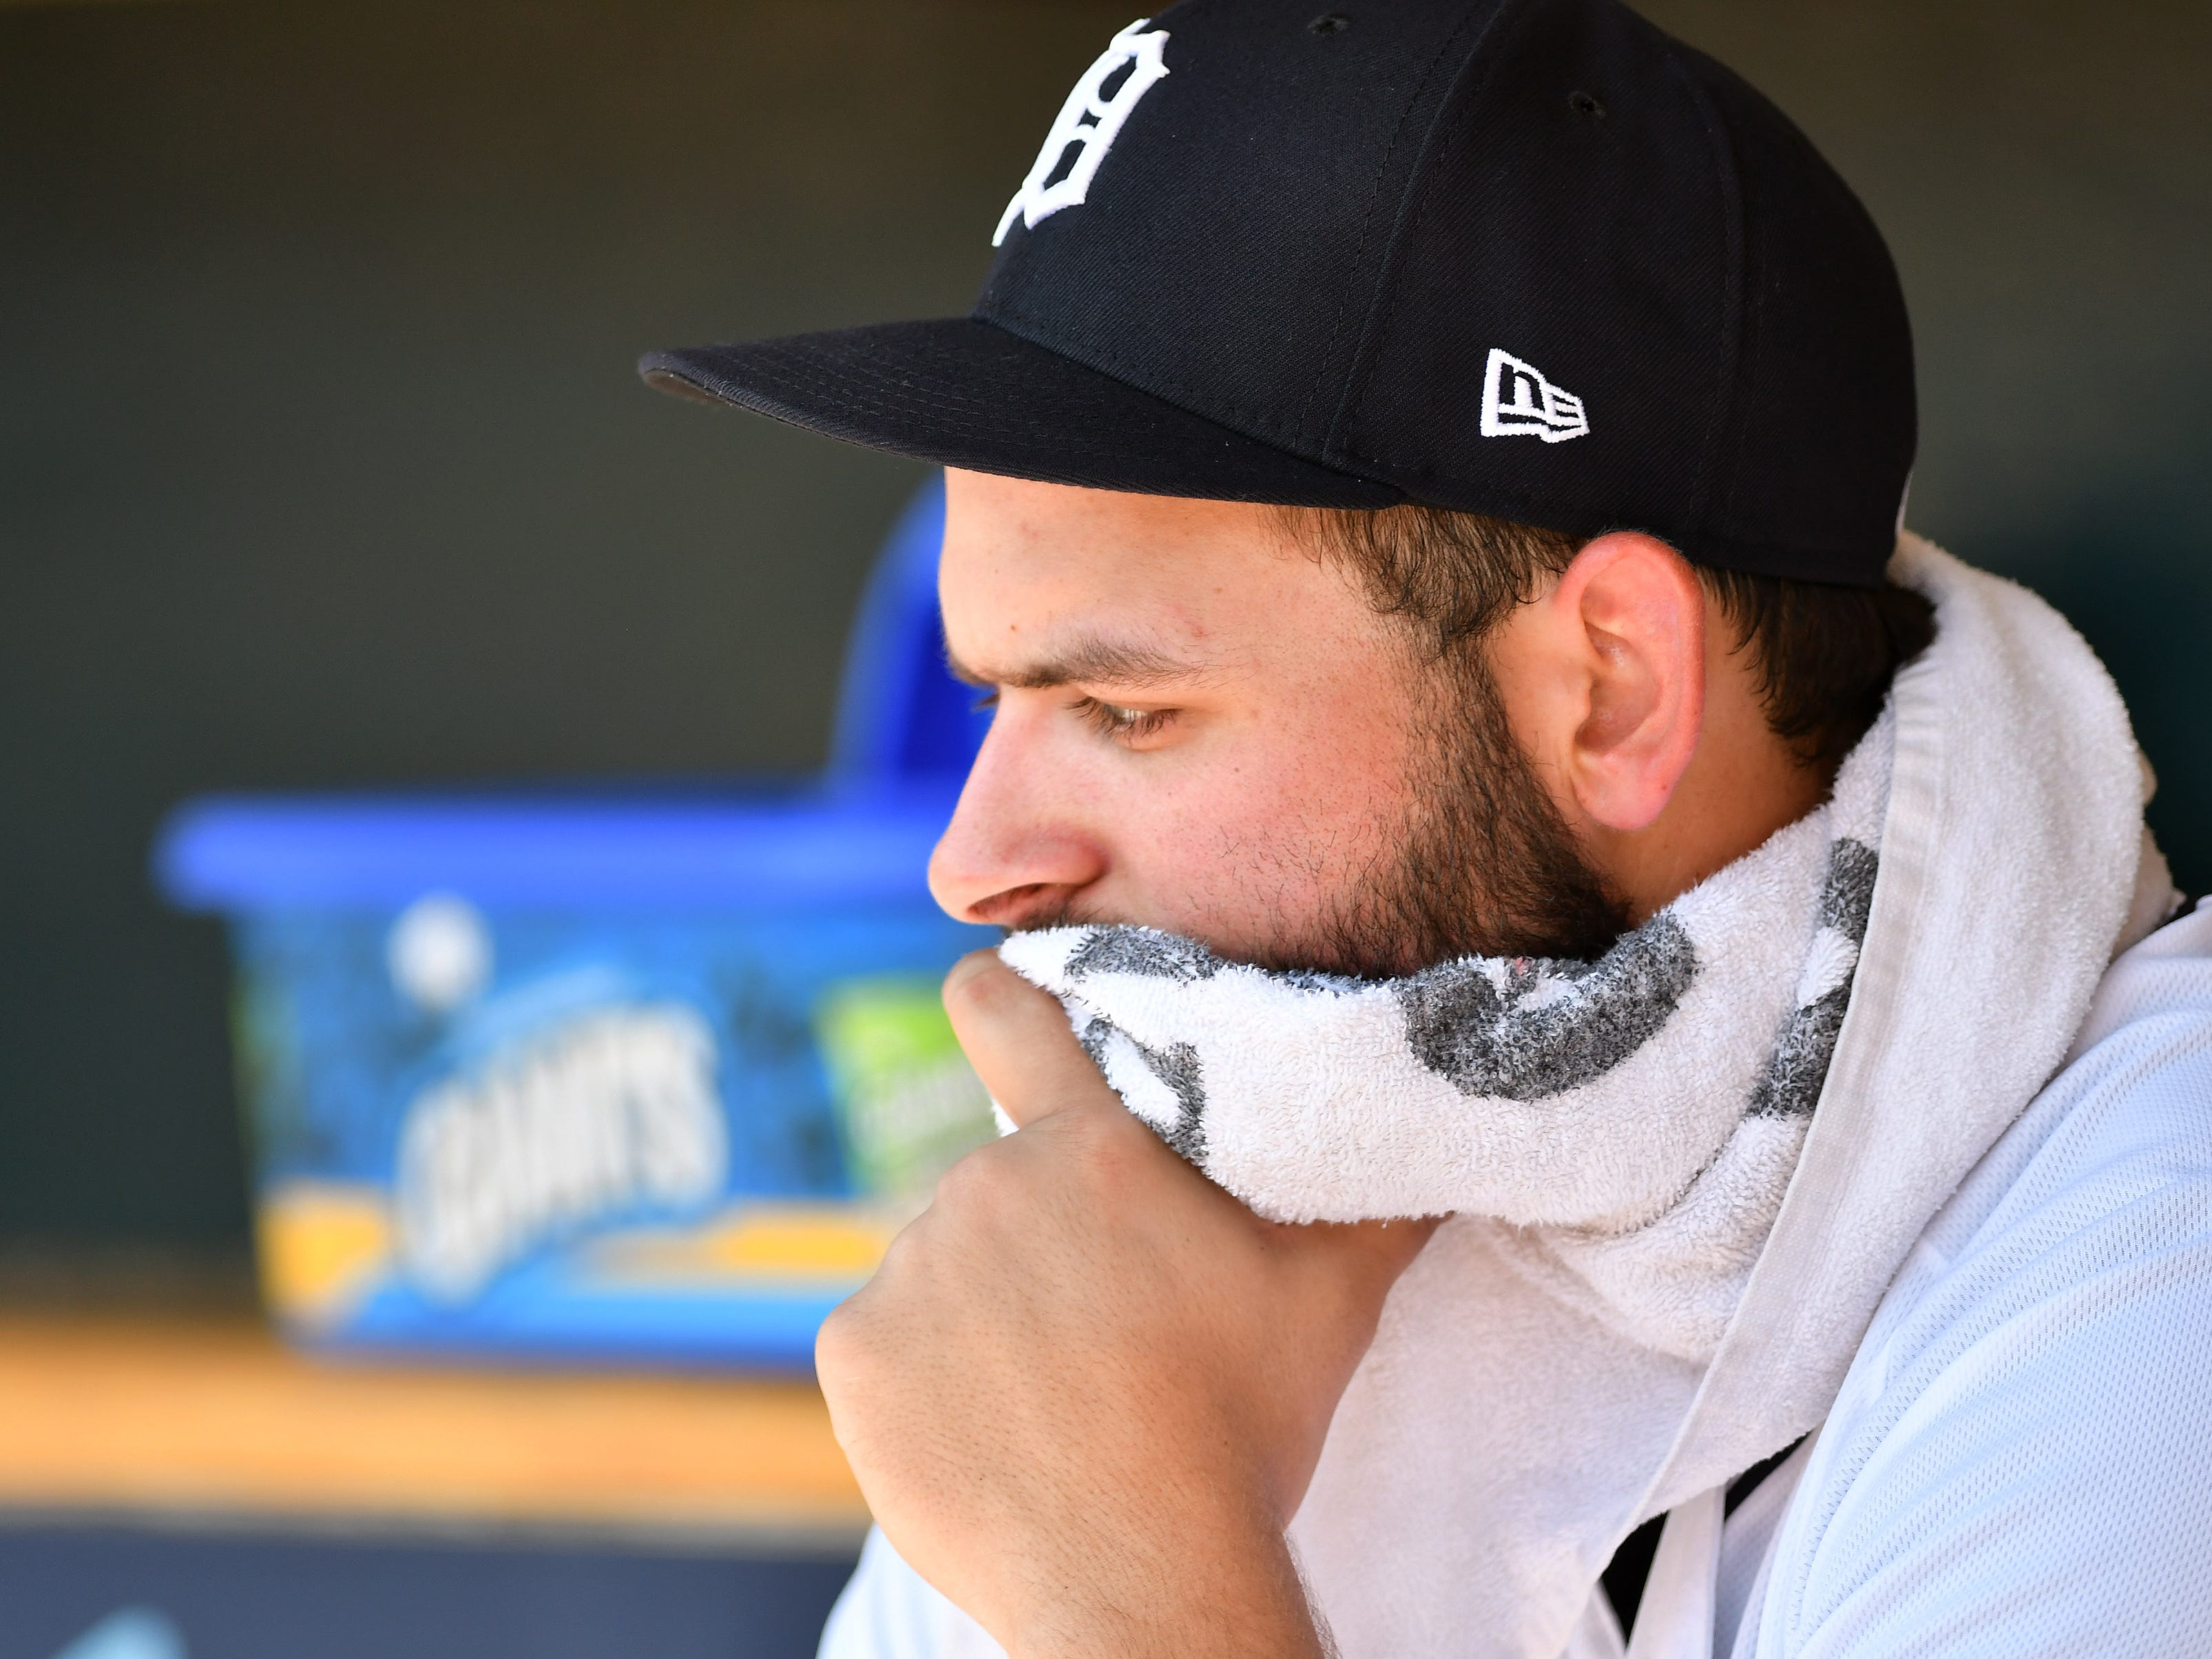 Michael Fulmer (3-12, 4.69, 1.31): A nerve issue in his elbow ended his 2017 and set him back at the start of this season. He strained an oblique coming out of the All-Star break and then had his season cut short in early September when he tore his meniscus. And in between all of that was the real angst. He battled his mechanics and himself in most of his 24 starts. The good news is that he had no issues with his arm and his velocity was still upper-90s, but the former AL Rookie of the Year will need to re-establish himself next spring. Mid-term grade: C Second-half grade: D Final grade: D-plus